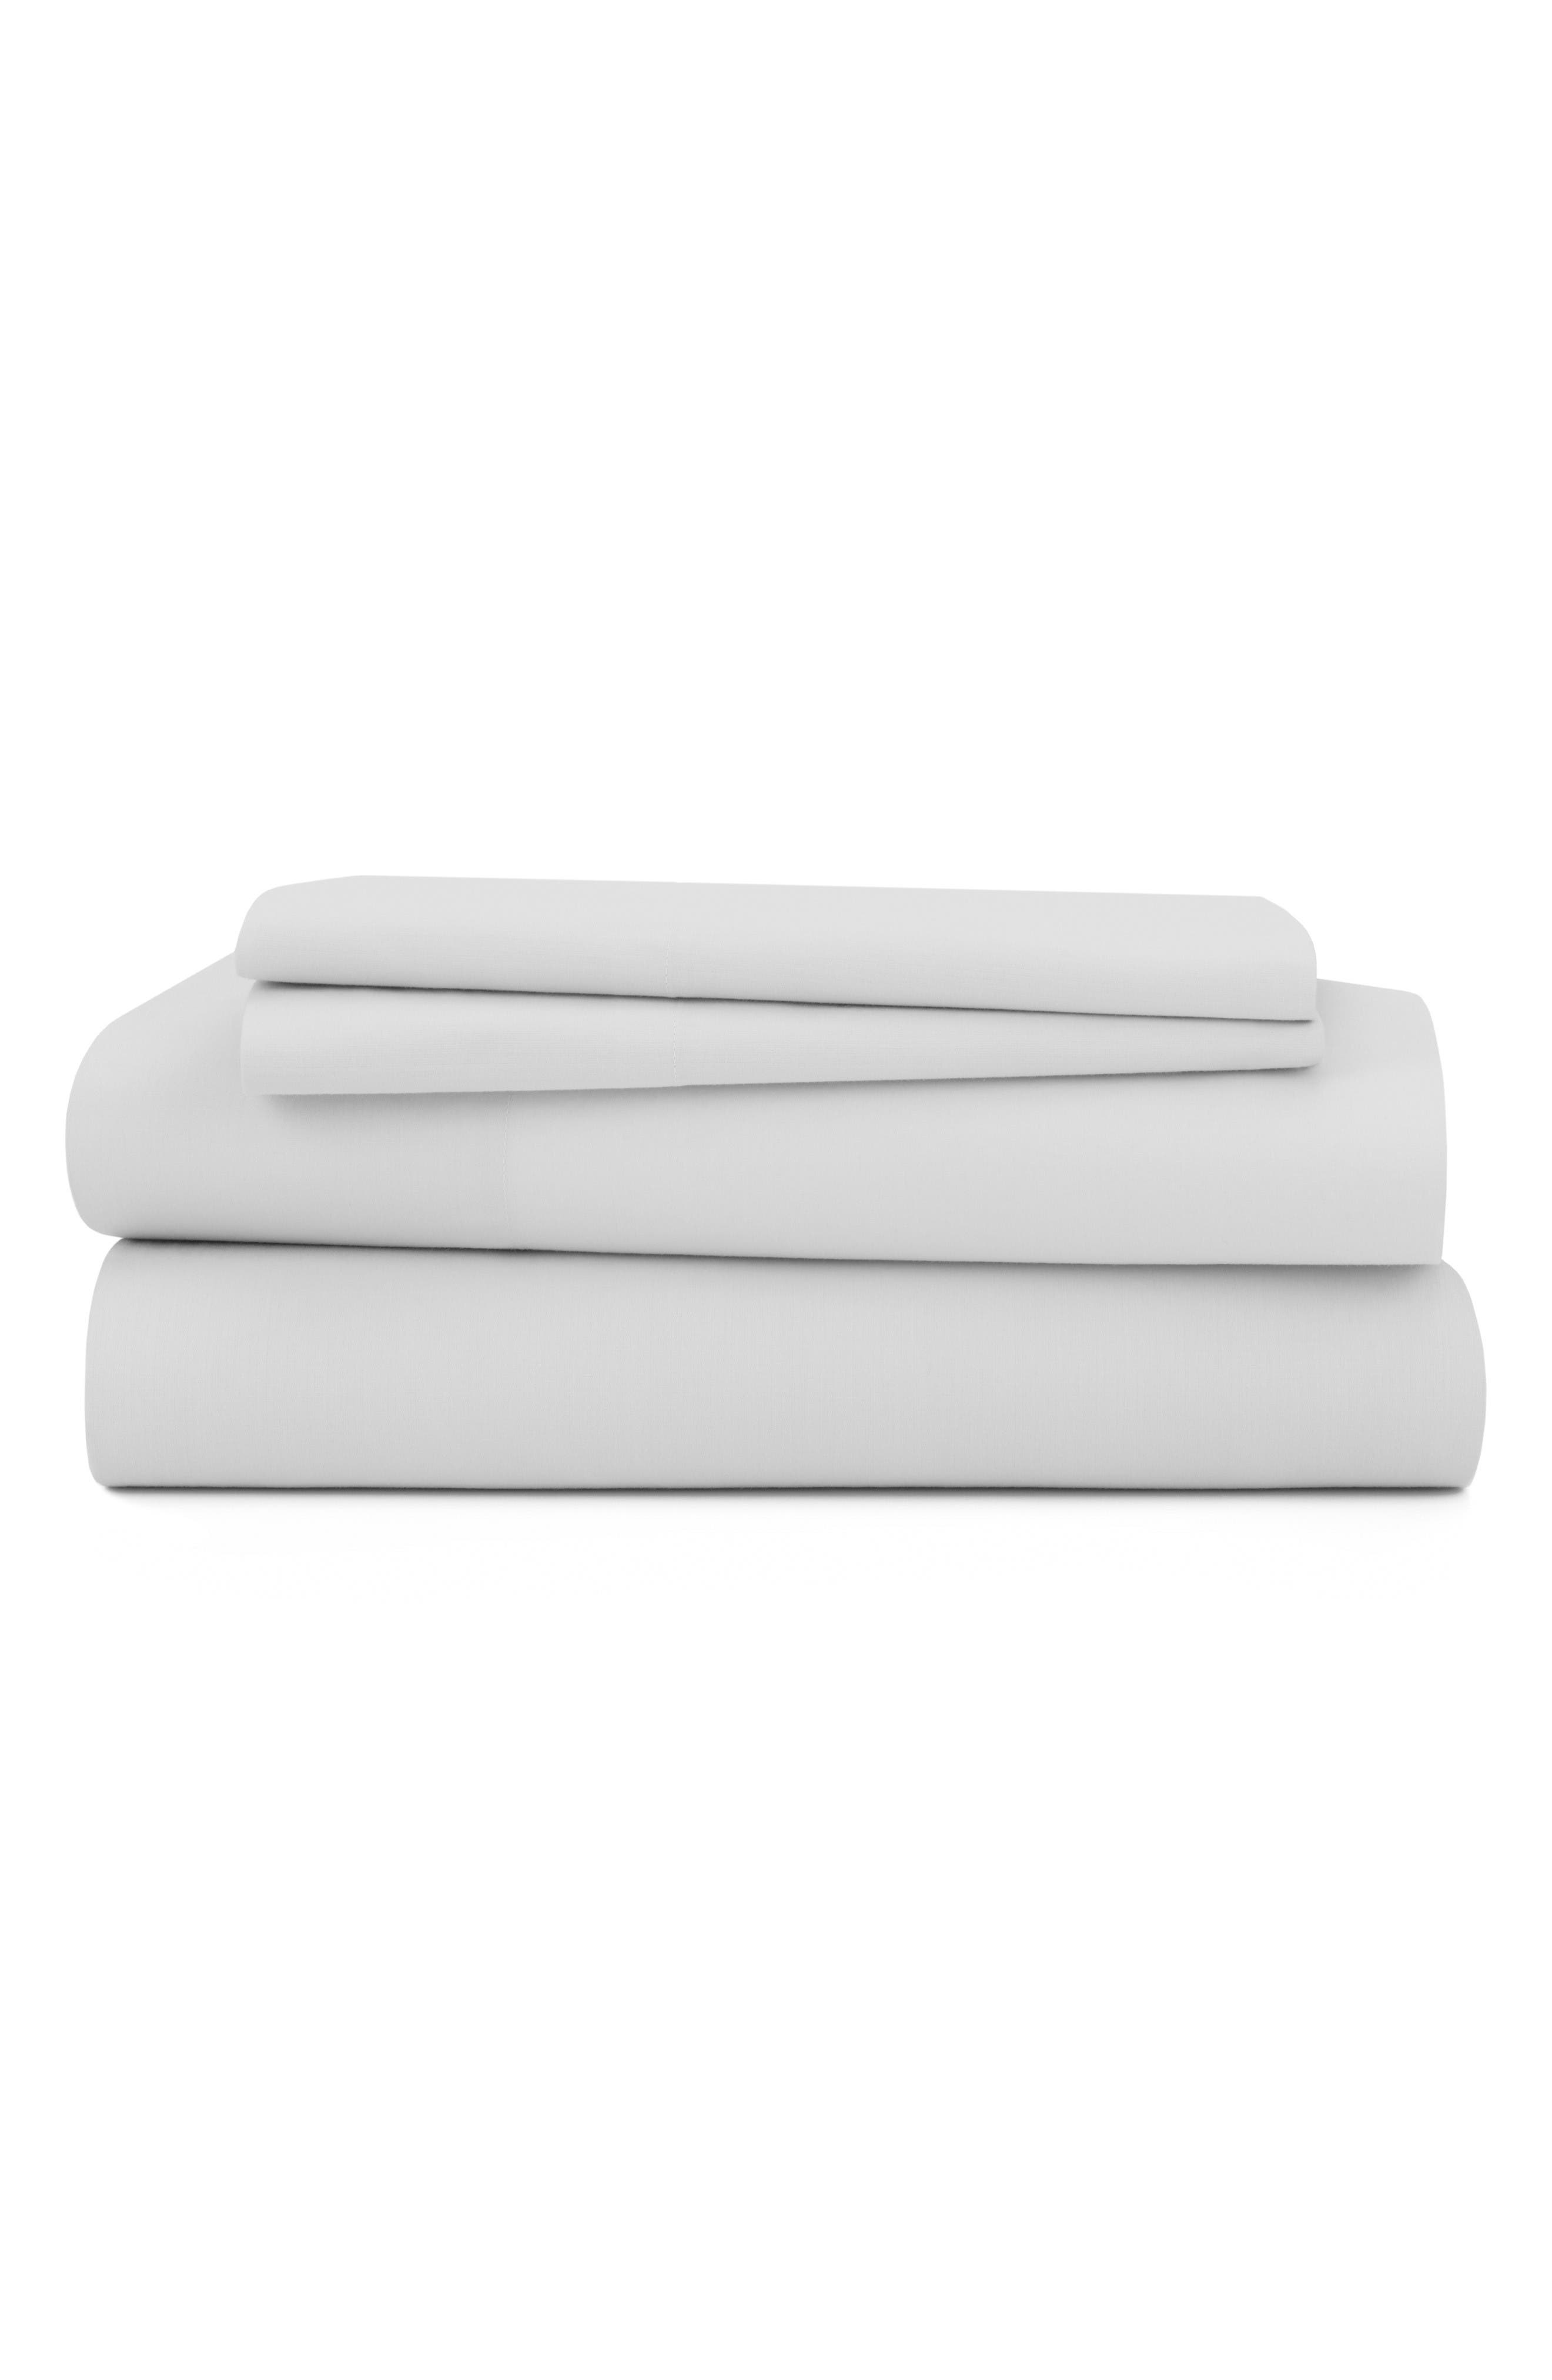 Alternate Image 1 Selected - UGG® Downtime Percale Sheet Set